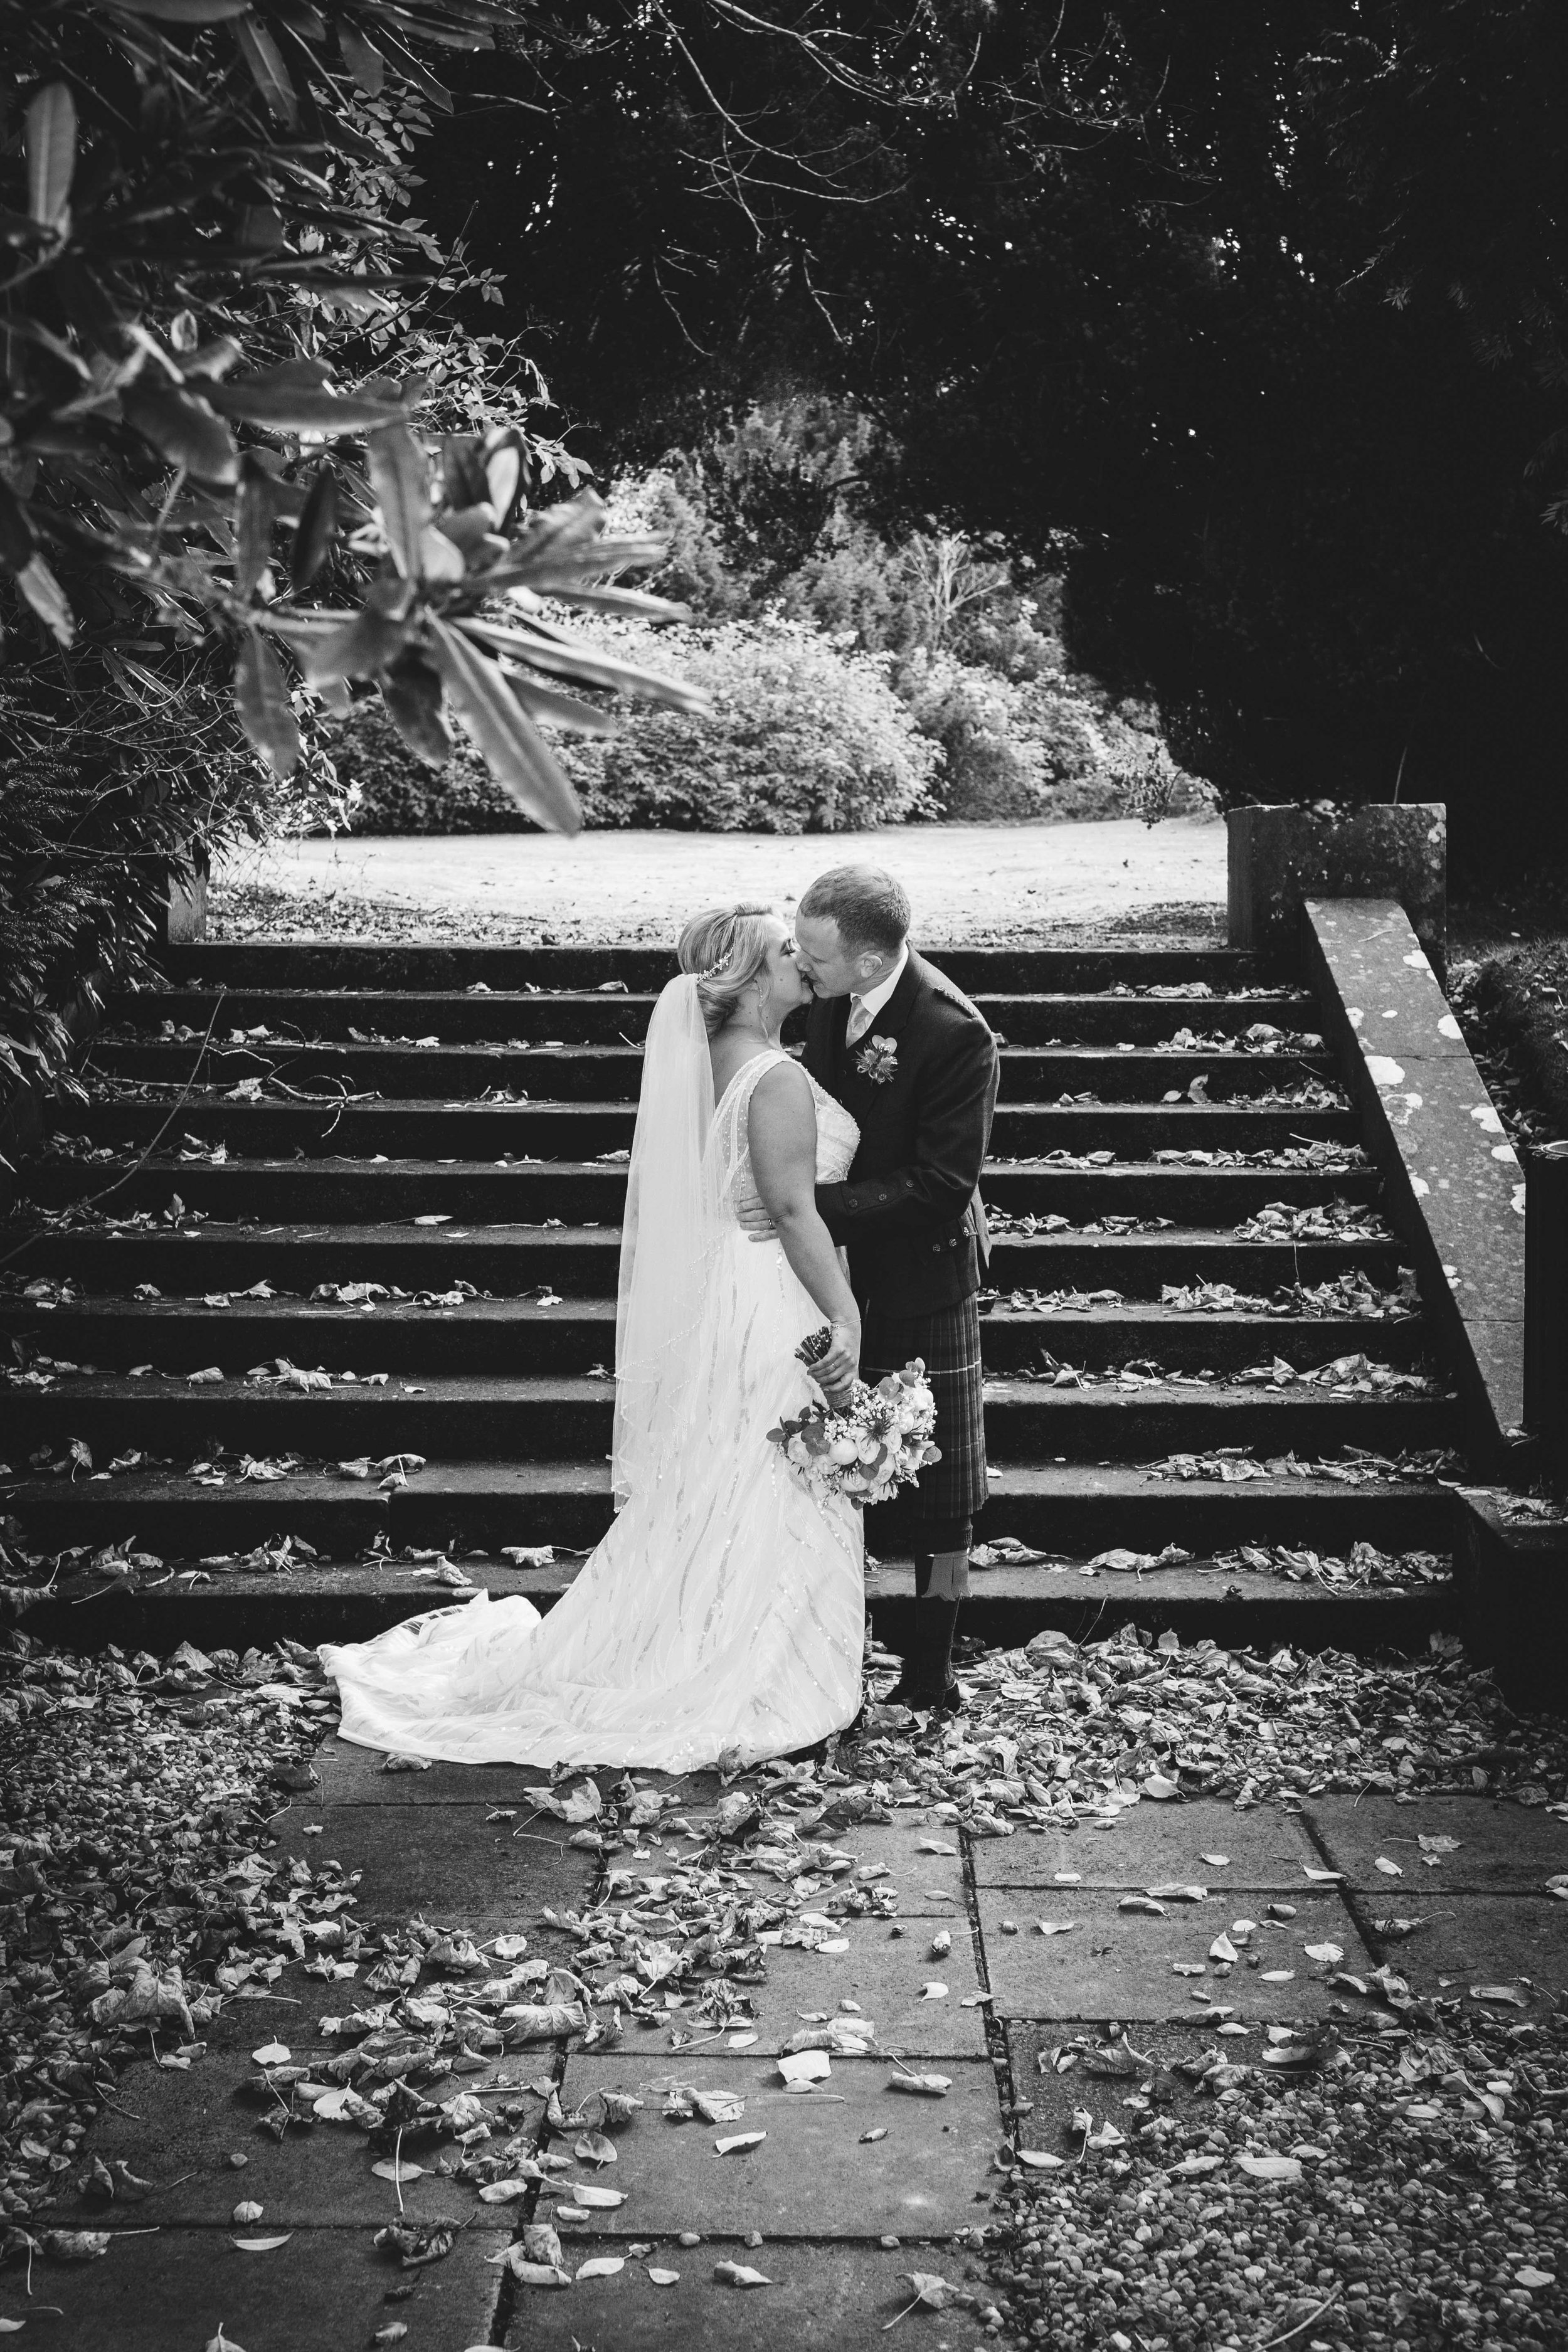 Mar Hall Wedding 2018, Haminsh & Emma McEwan 35.JPG